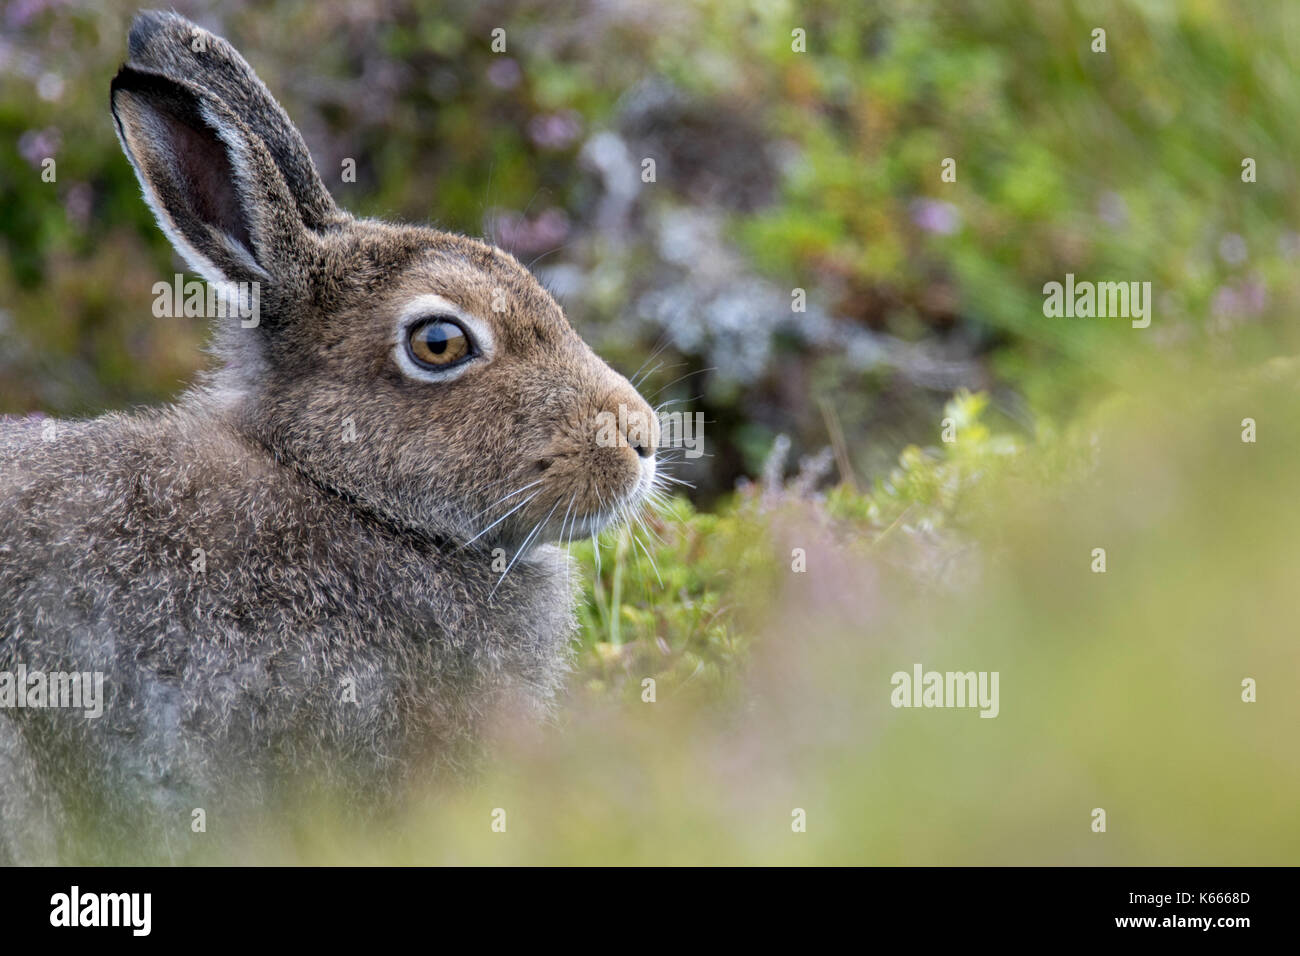 Mountain Hare (Lepus Timidus), Scottish Highlands, August 2017 - Stock Image